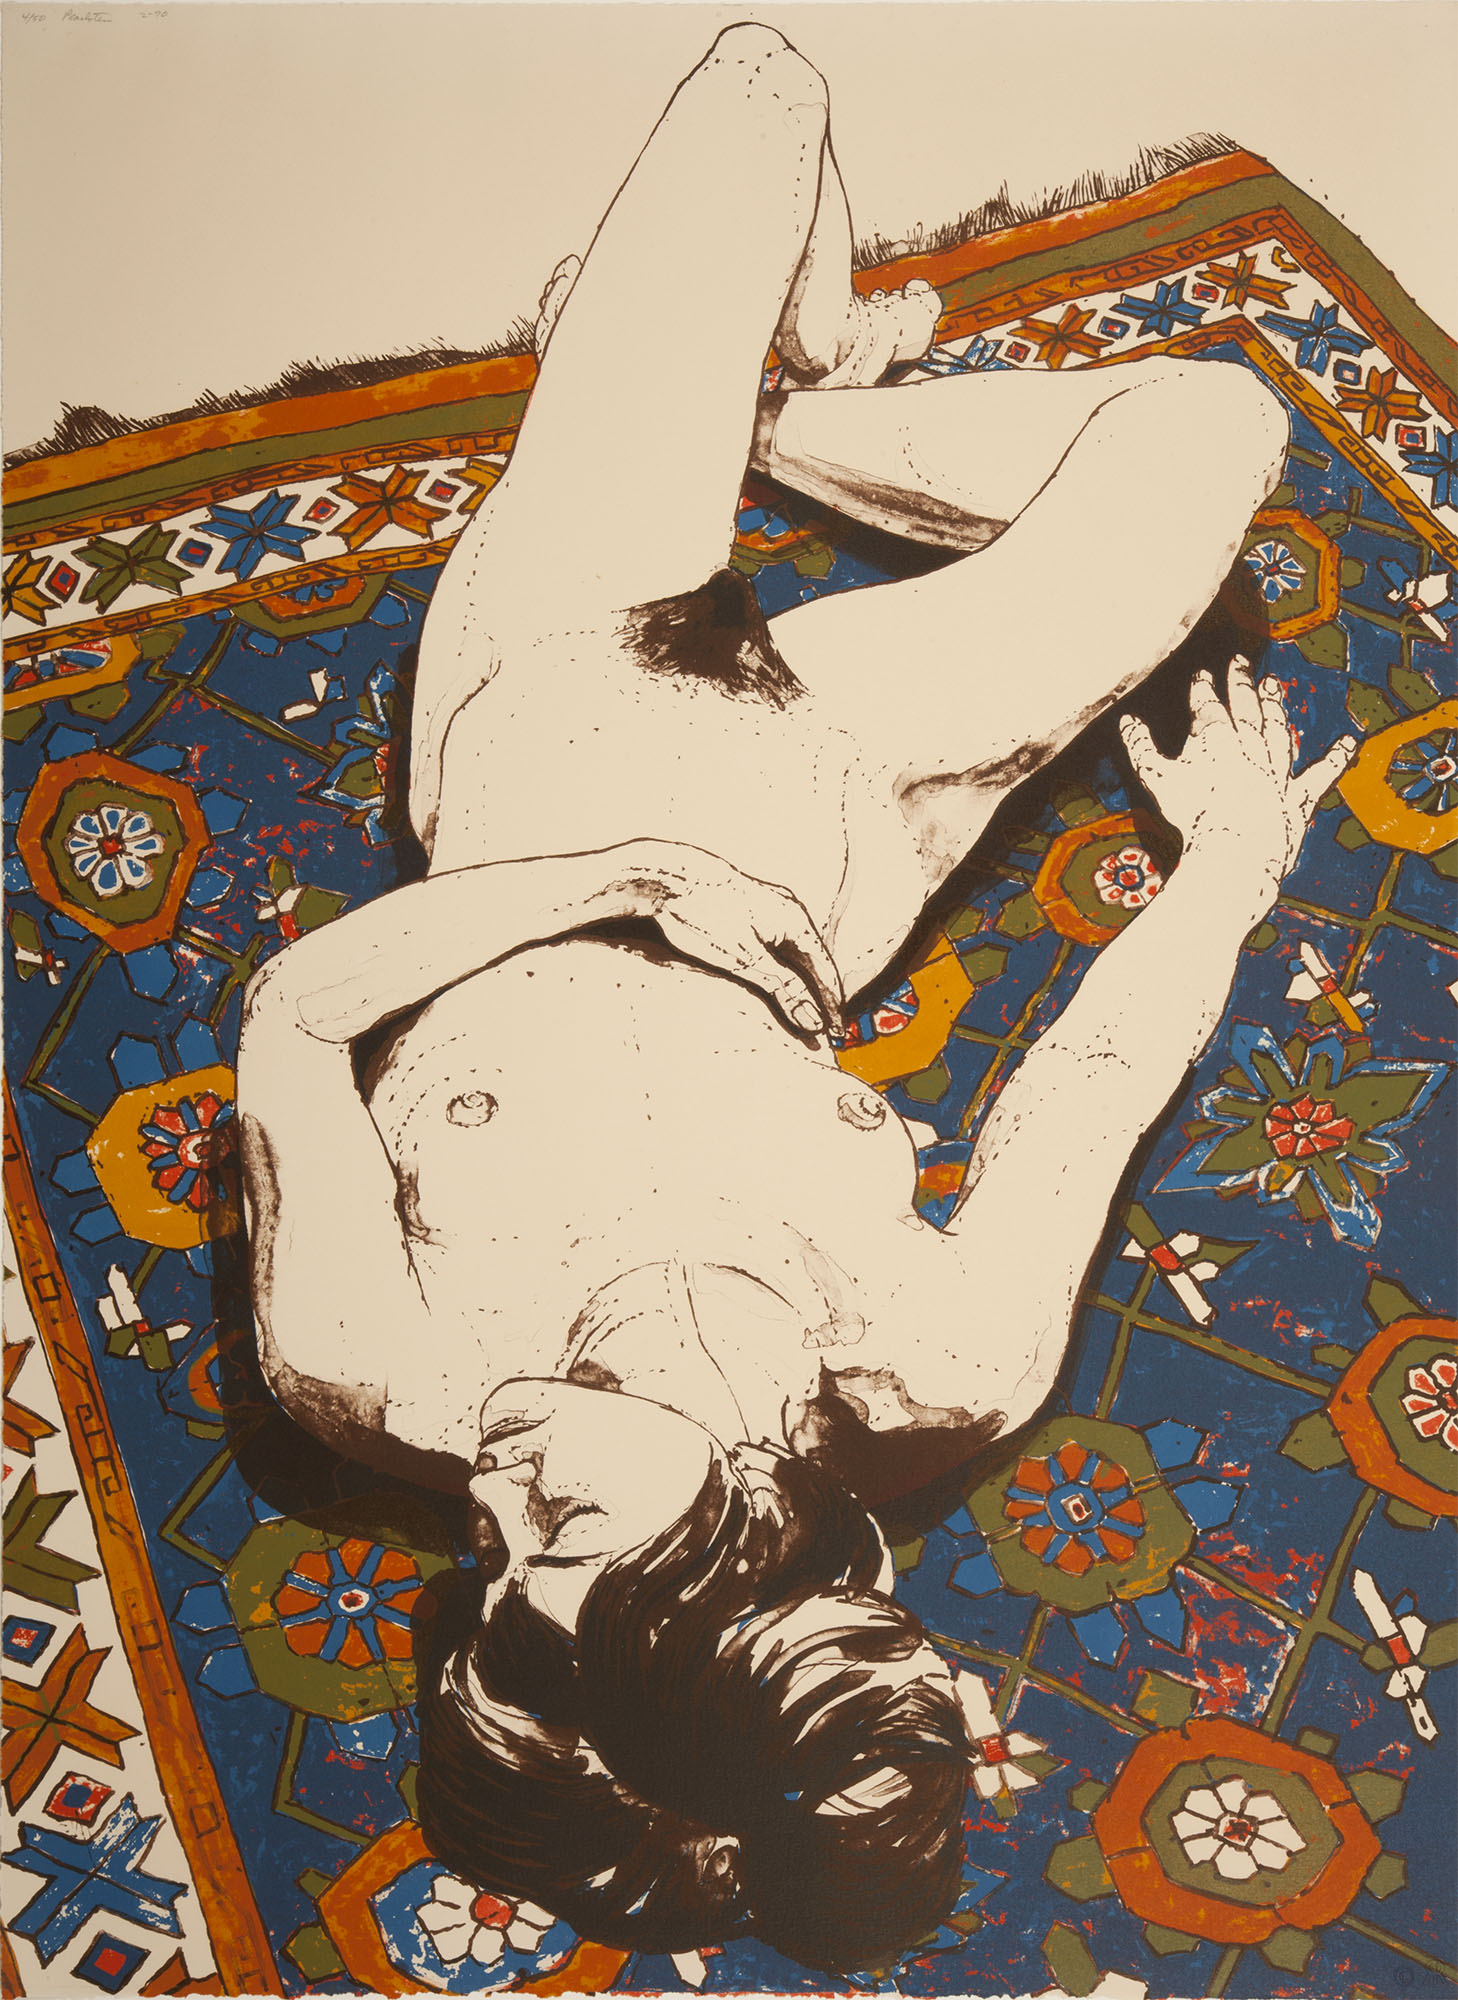 Phillip Pearlstein, Untitled [nude reclining on carpet], 1970. Lithograph. Collection of DePaul Art Museum, gift of John and Mary Gedo, 2010.6